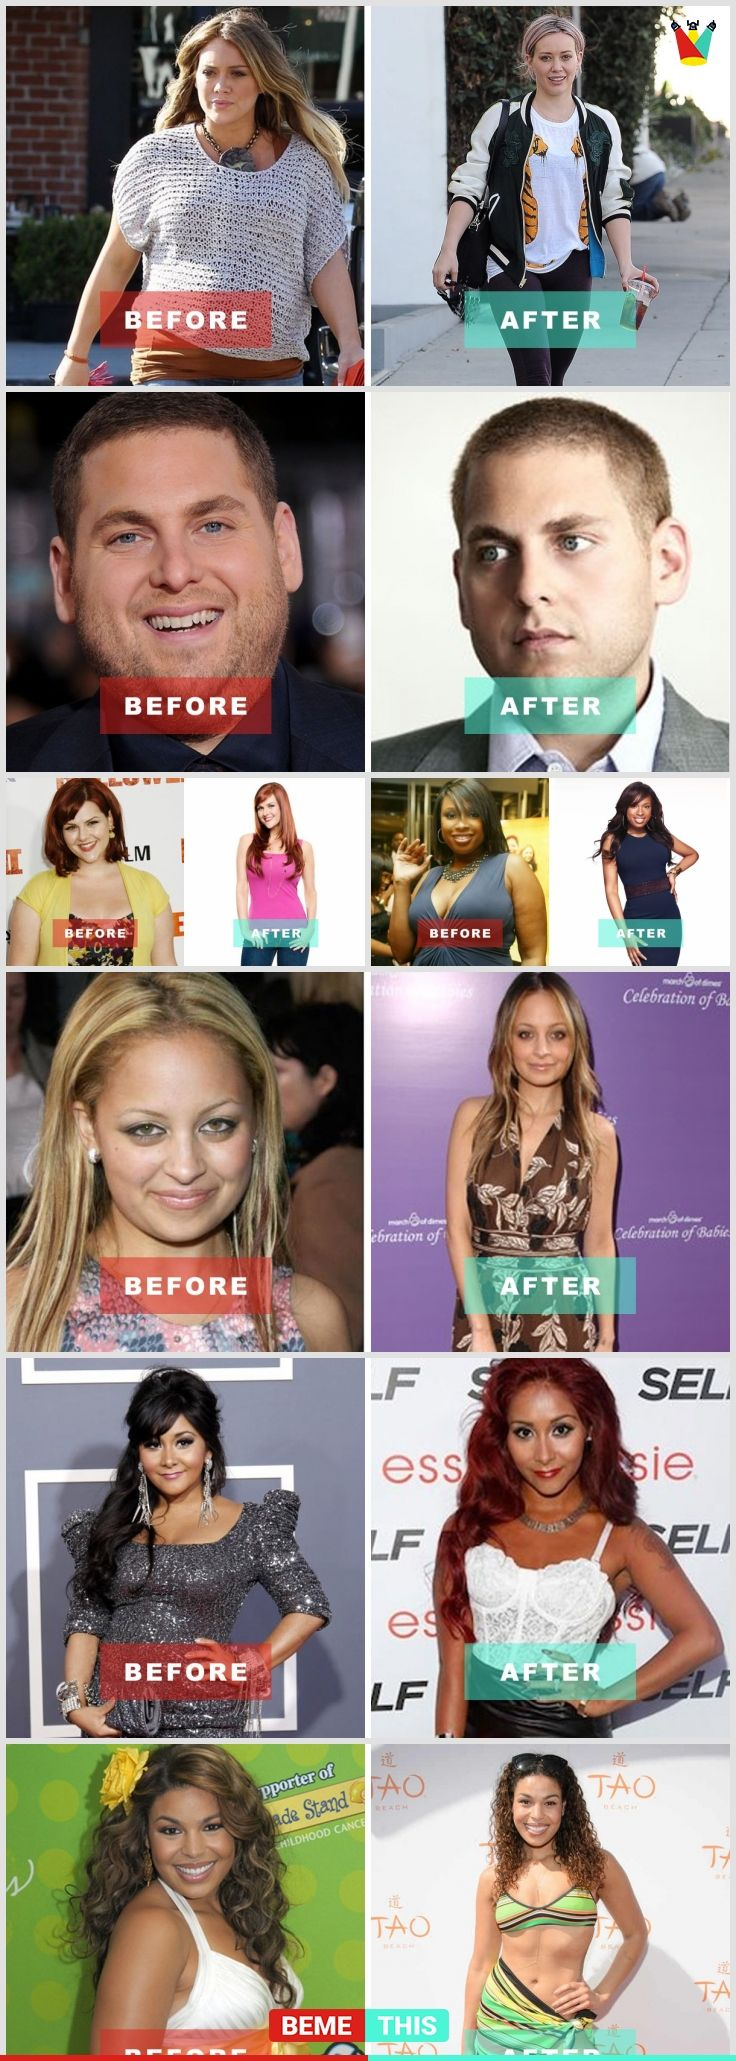 incredible celebrities' transformations that will amaze you